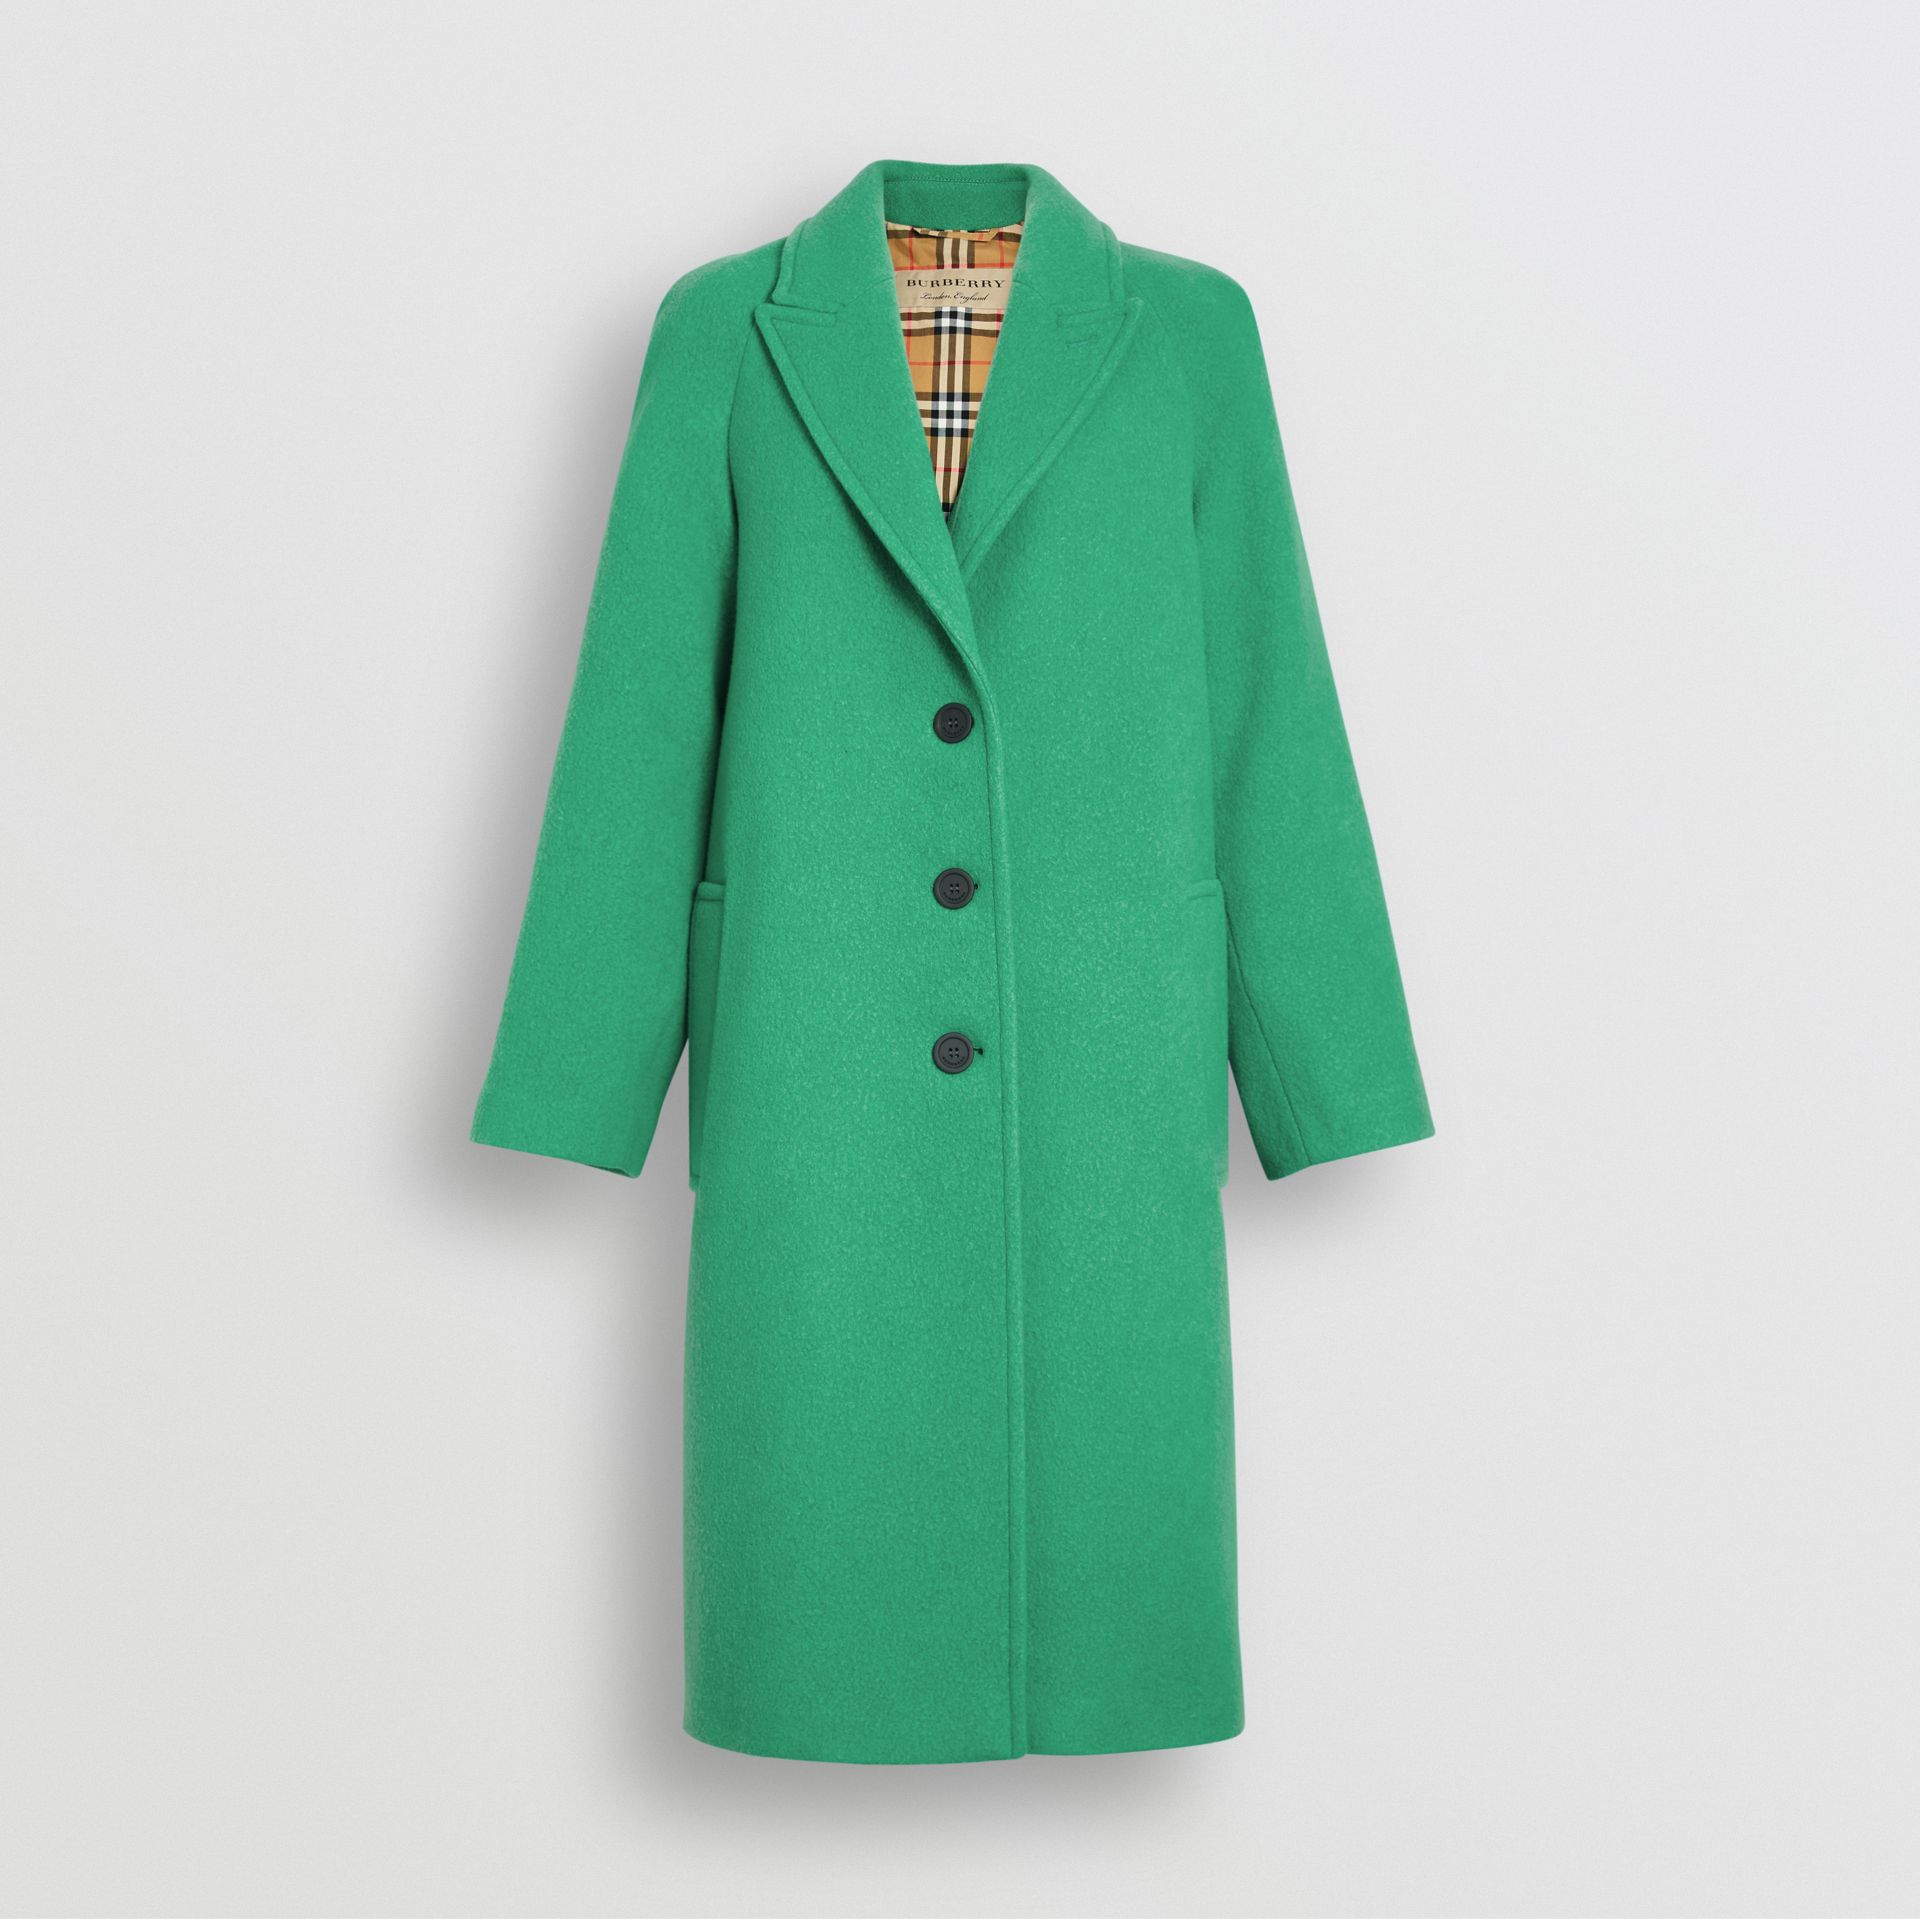 Wool Blend Tailored Coat in Bright Green - Women | Burberry United Kingdom - gallery image 3